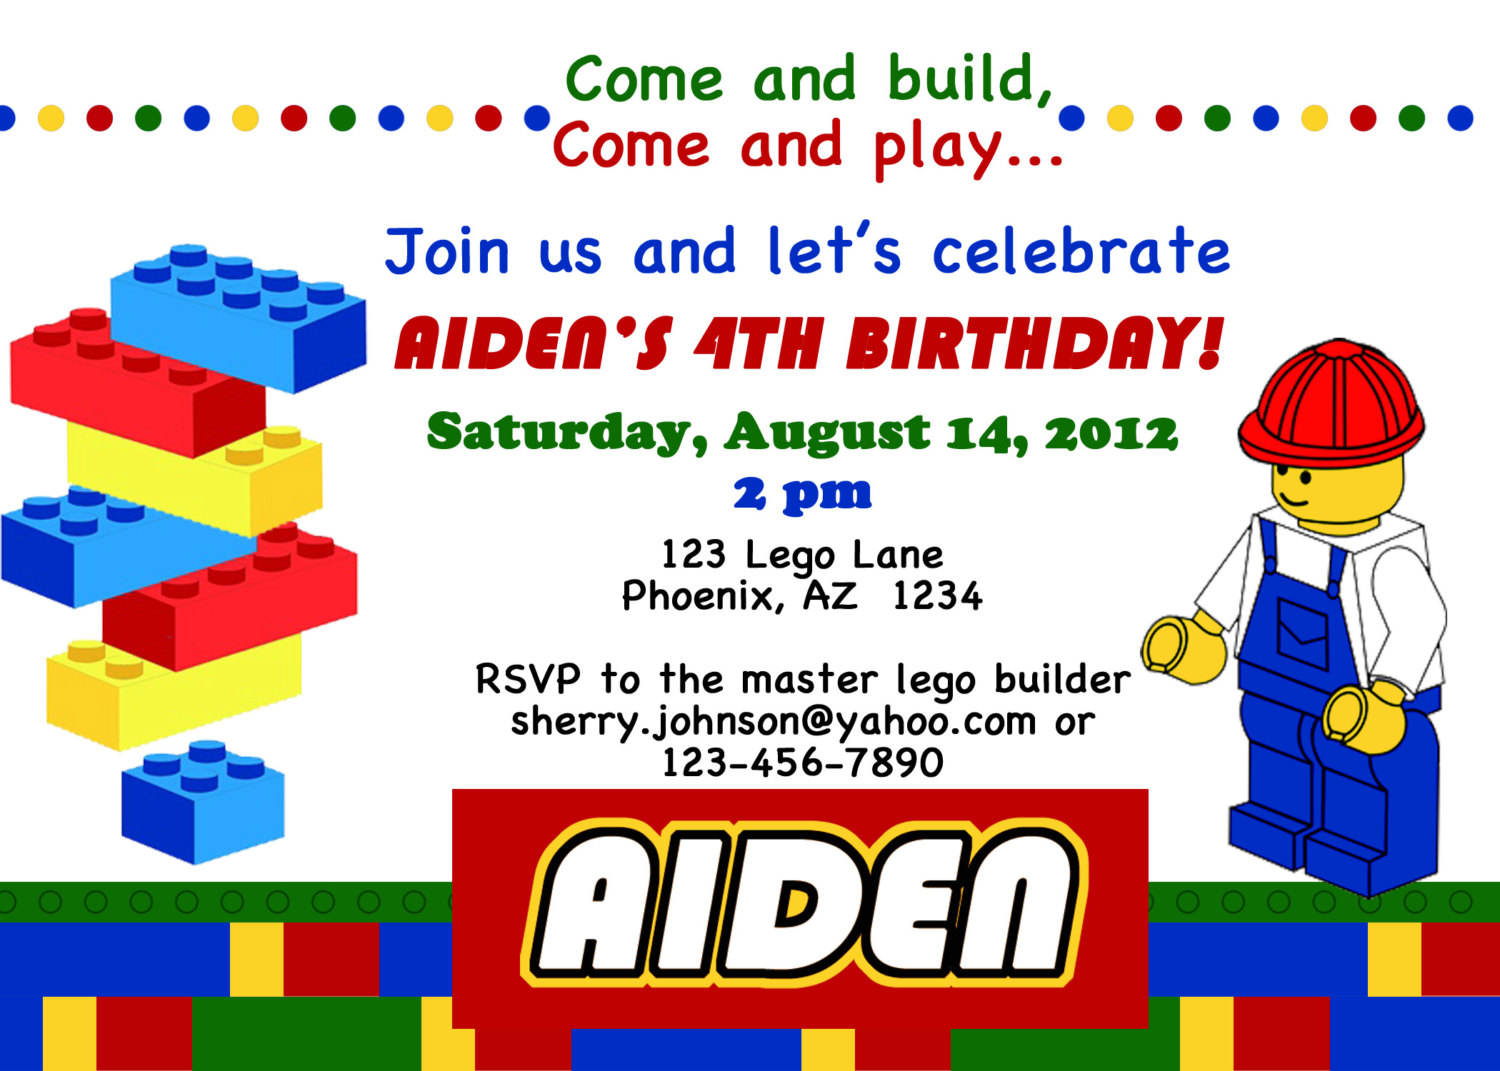 lego birthday party invitations gangcraft net lego birthday party invitations printable mickey mouse birthday invitations